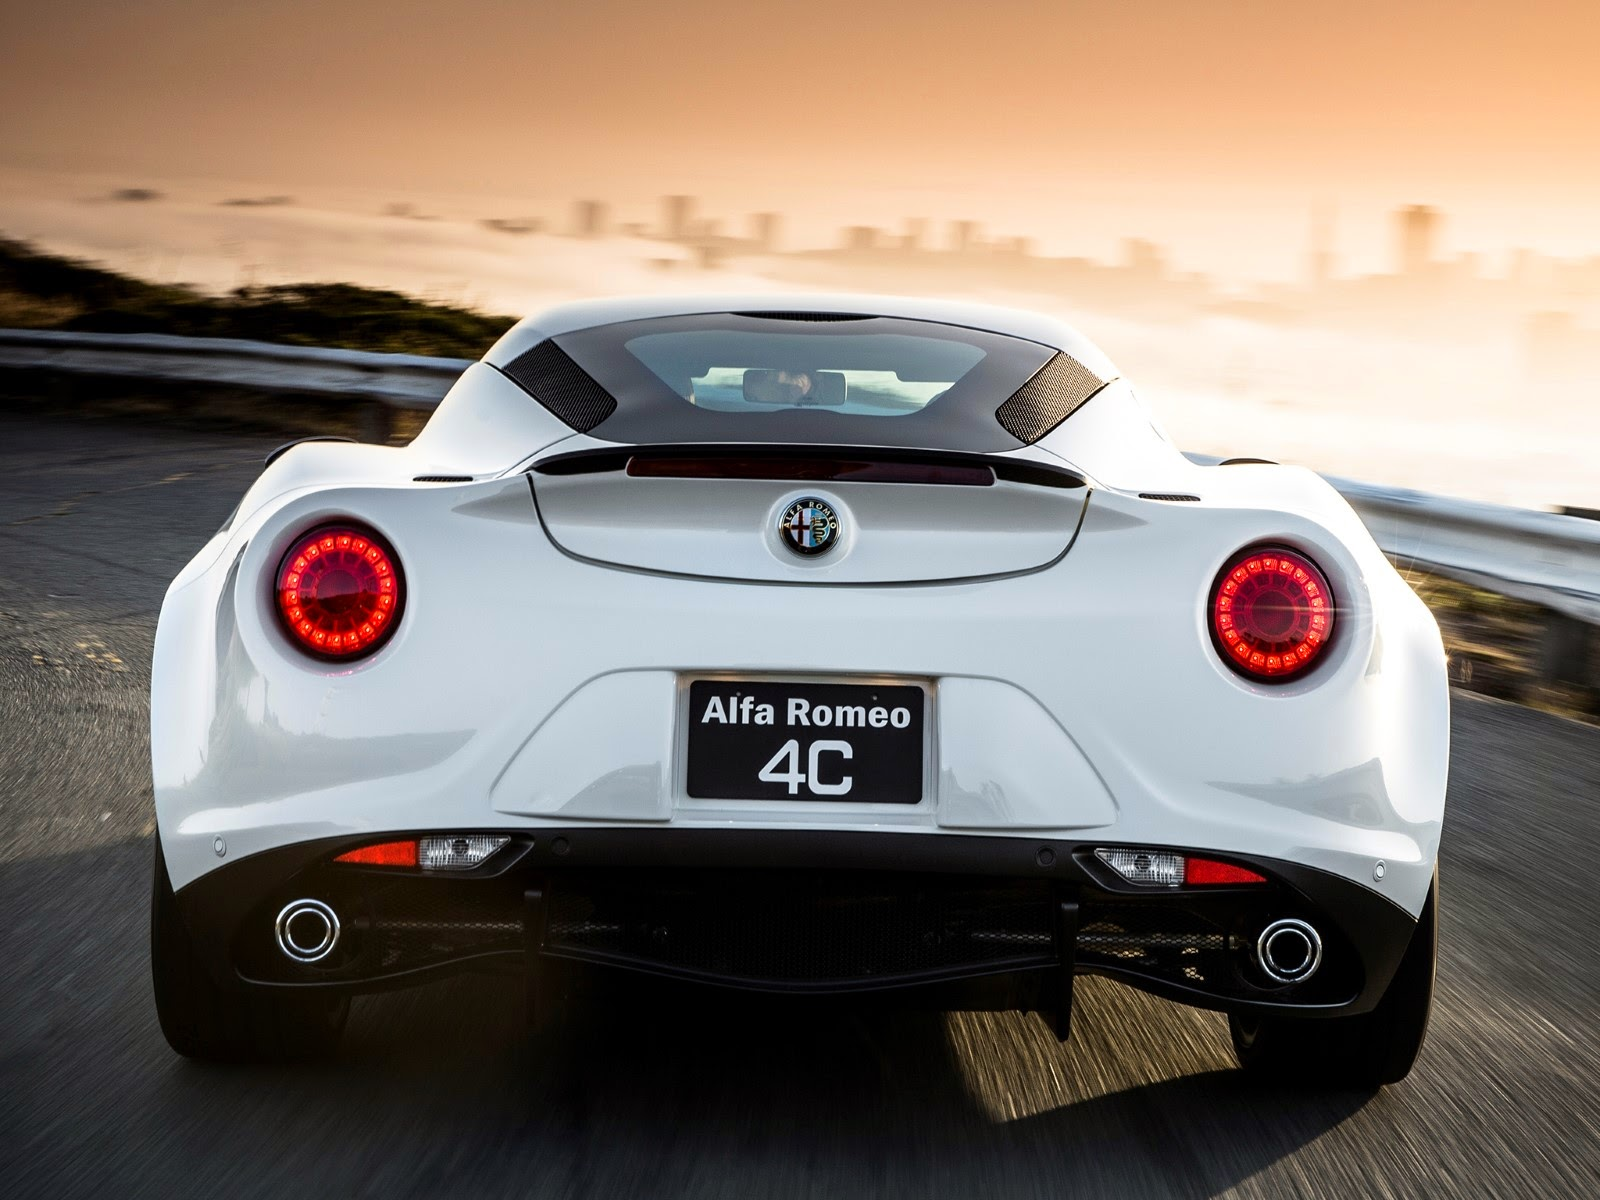 Best Car Review 51 Alfa Romeo 4c Of All Alfas Rear Round Led Lights